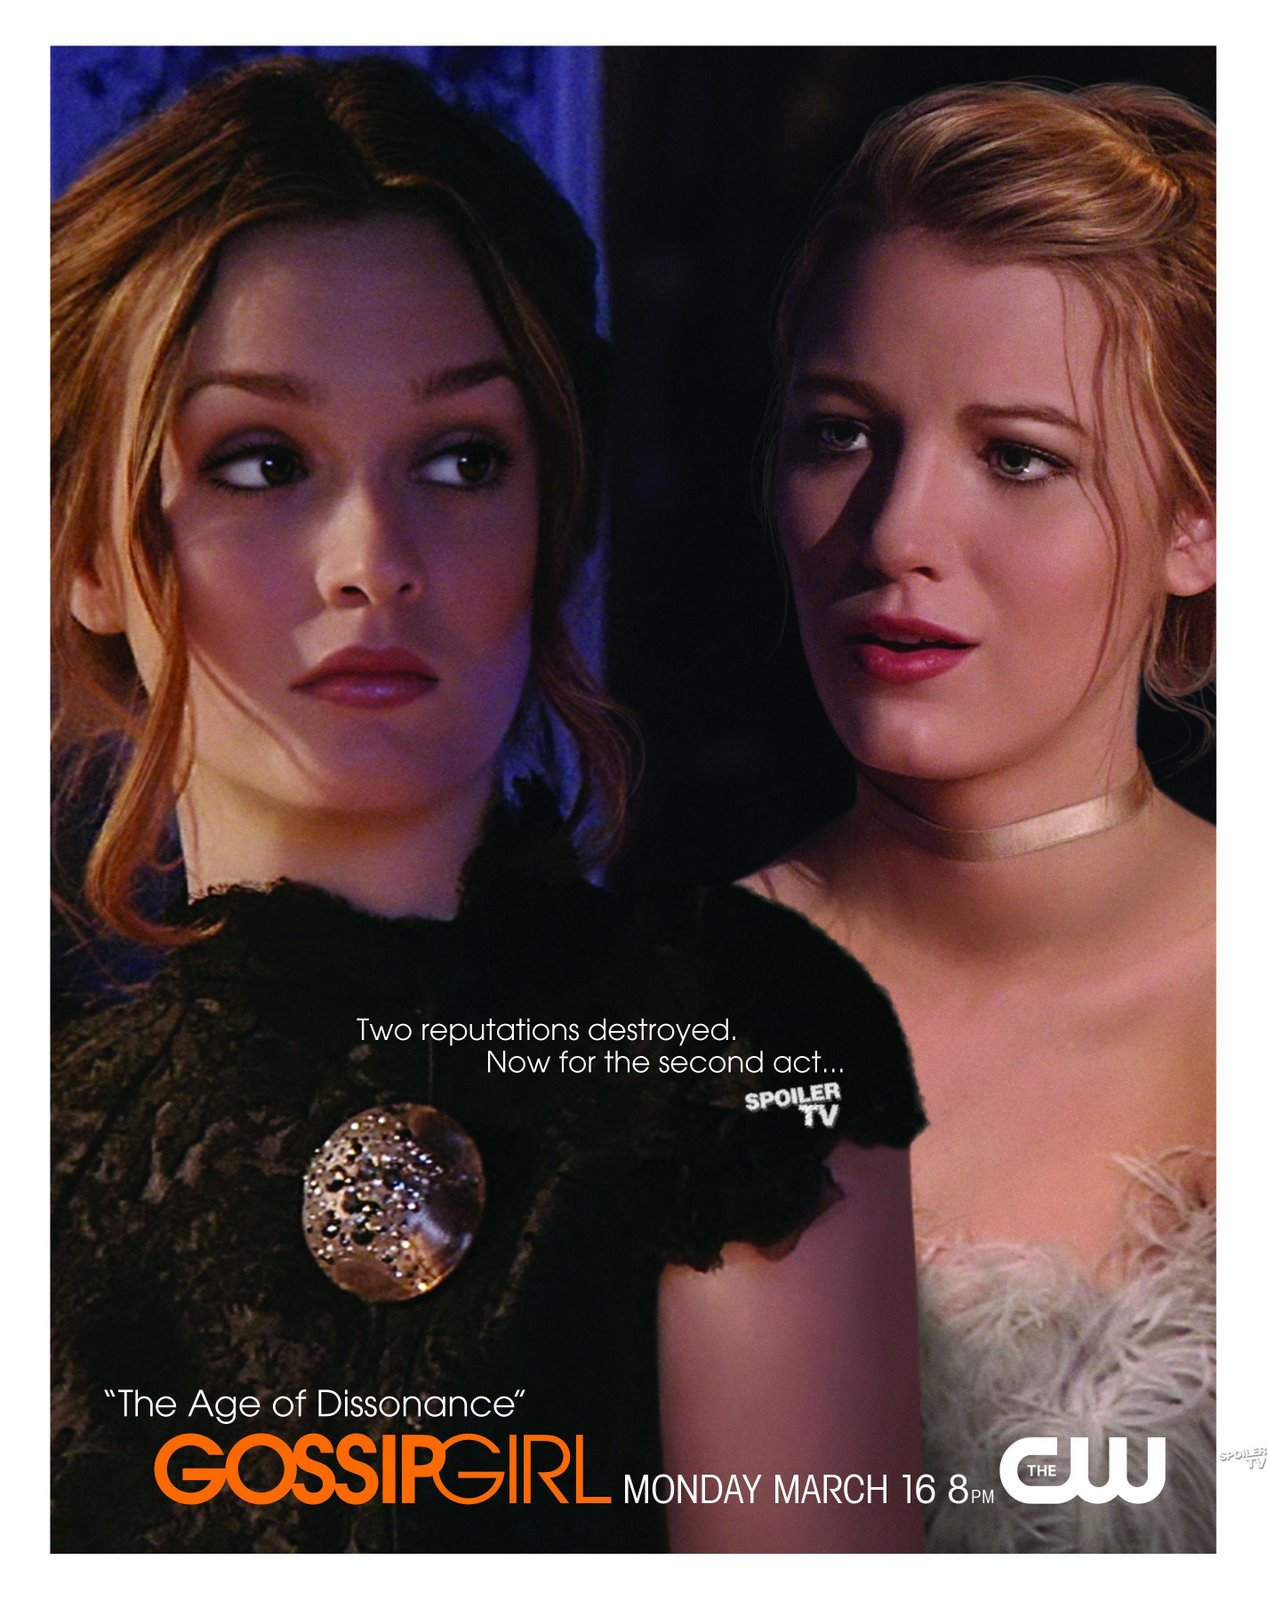 Gossip Girl The Age of Dissonance TV Episode